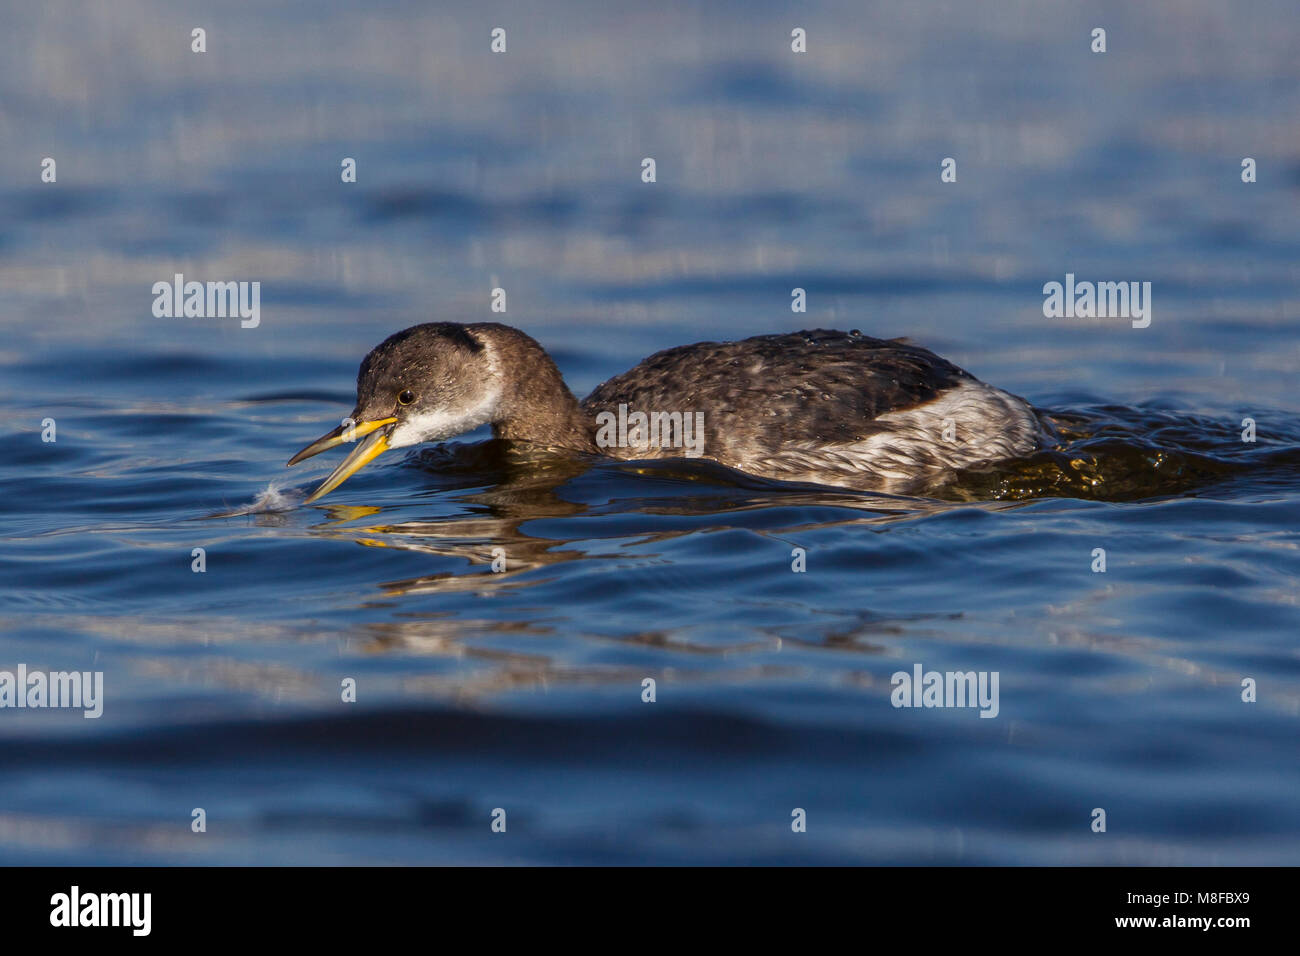 Roodhalsfuut zwemmend in Italiaanse haven; Red-necked Grebe swimming in Italian harbour - Stock Image